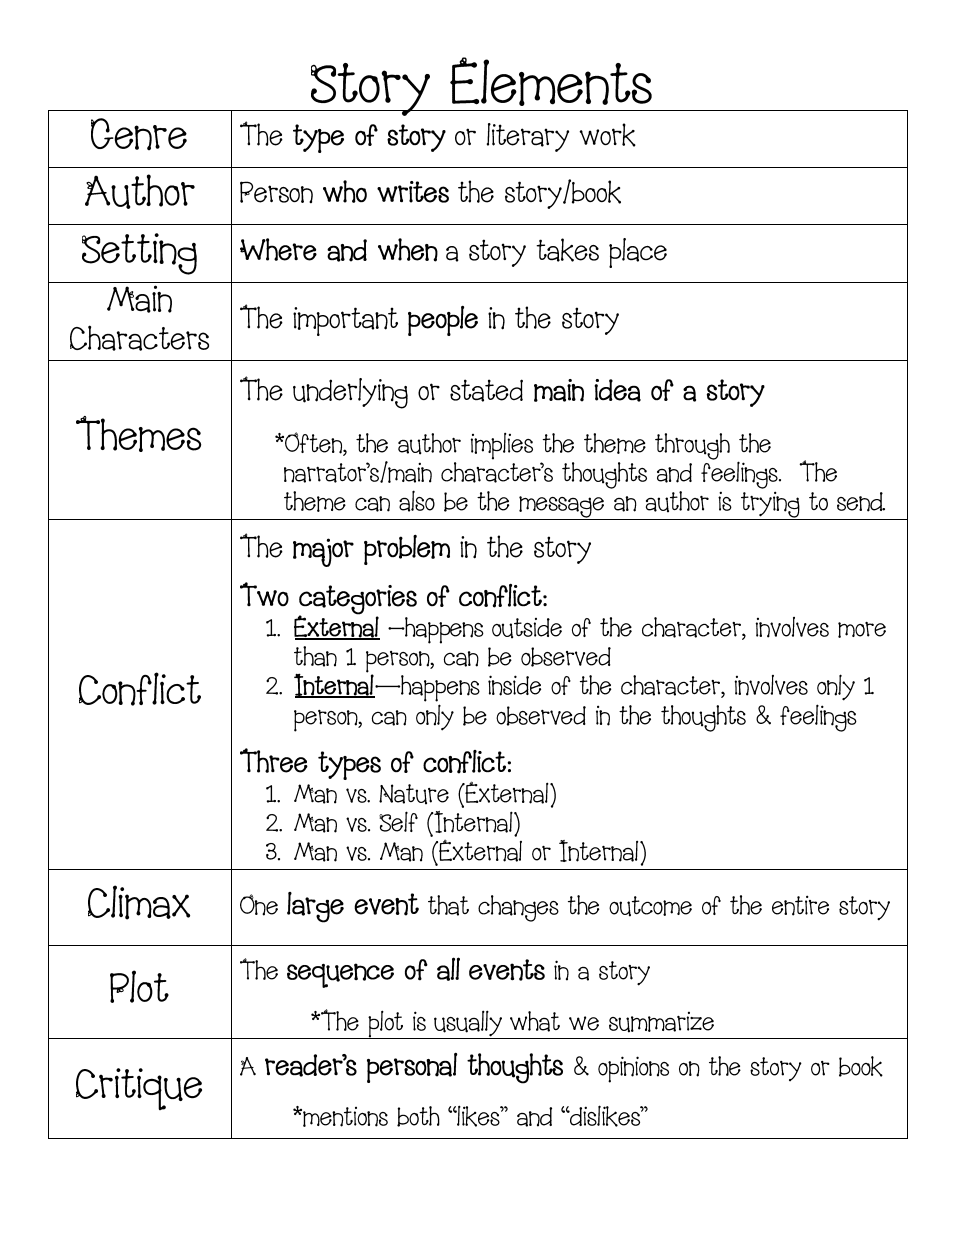 small resolution of 29 Elements Of A Short Story Worksheet - Worksheet Resource Plans